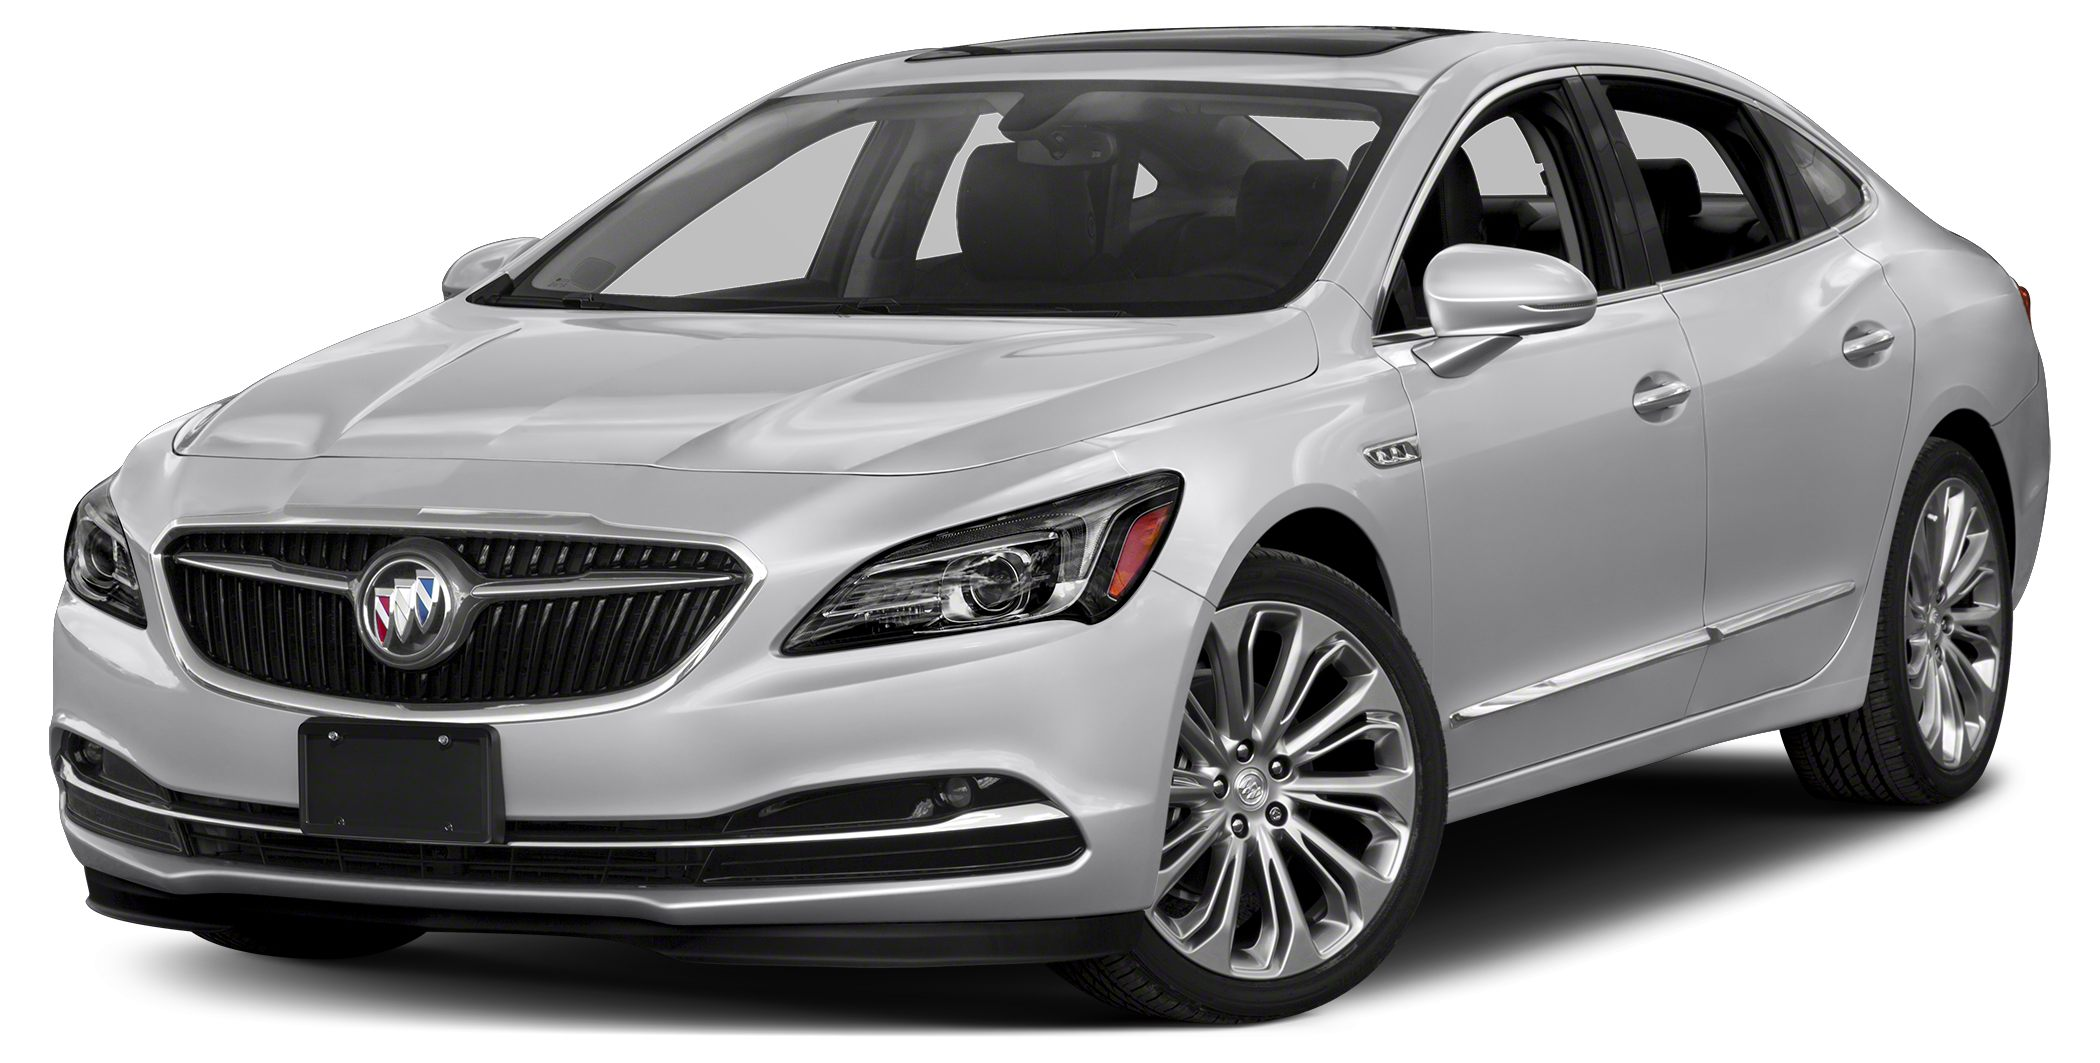 2017 Buick LaCrosse Preferred Thank you for visiting another one of Conley Buick GMCs exclusive l